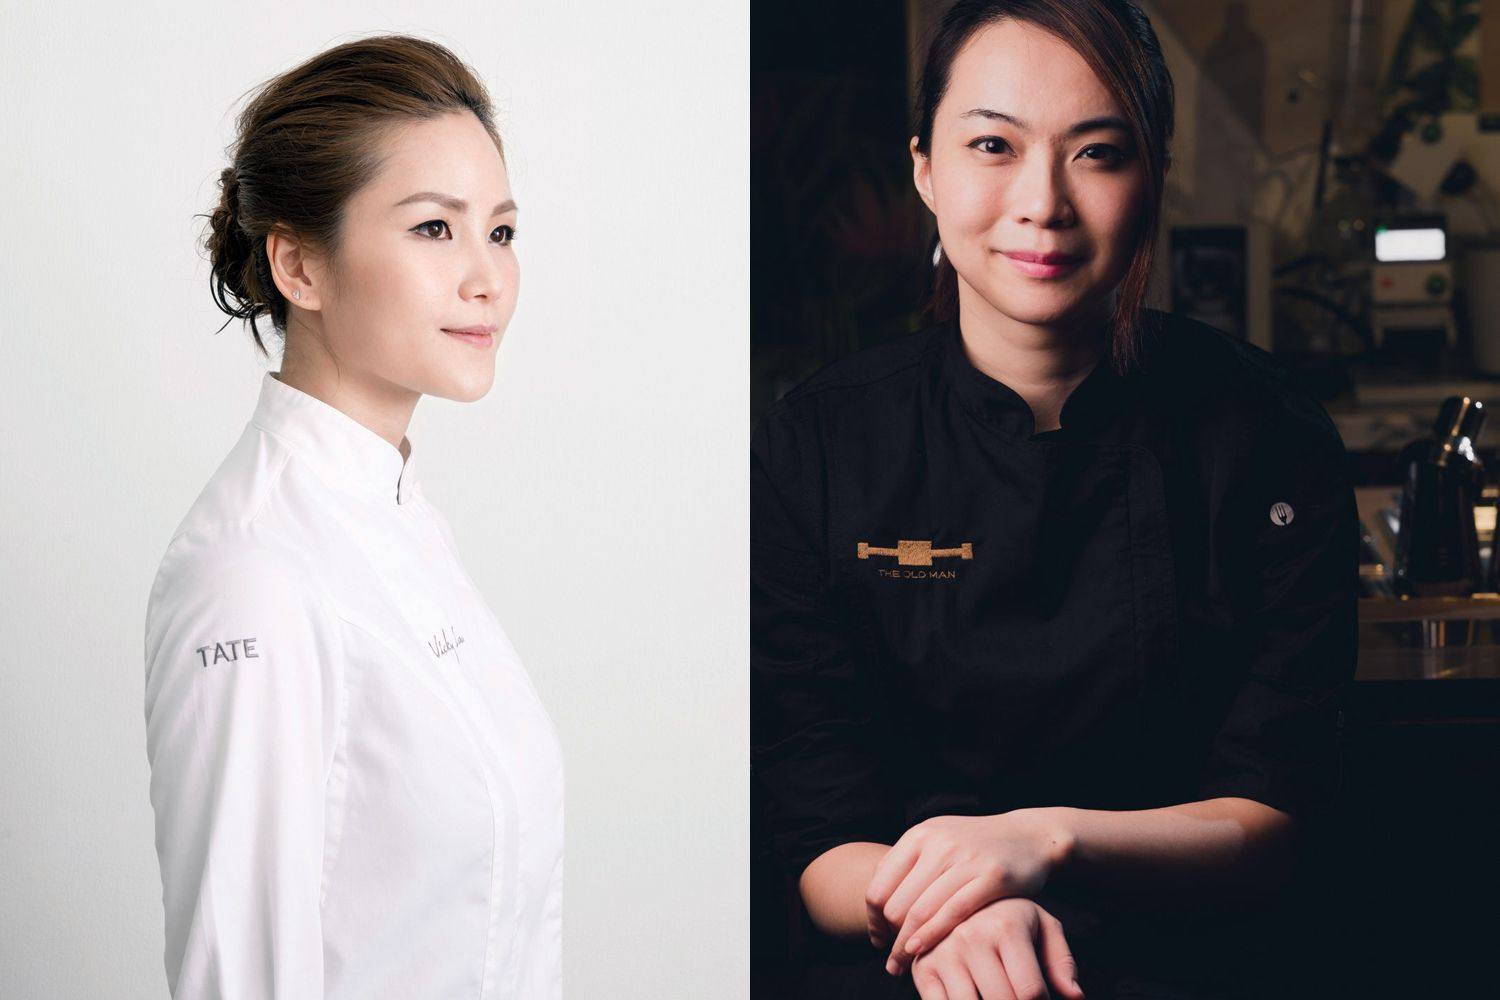 Tate Dining Room's Vicky Lau To Collaborate With Natalie Lau Of The Old Man